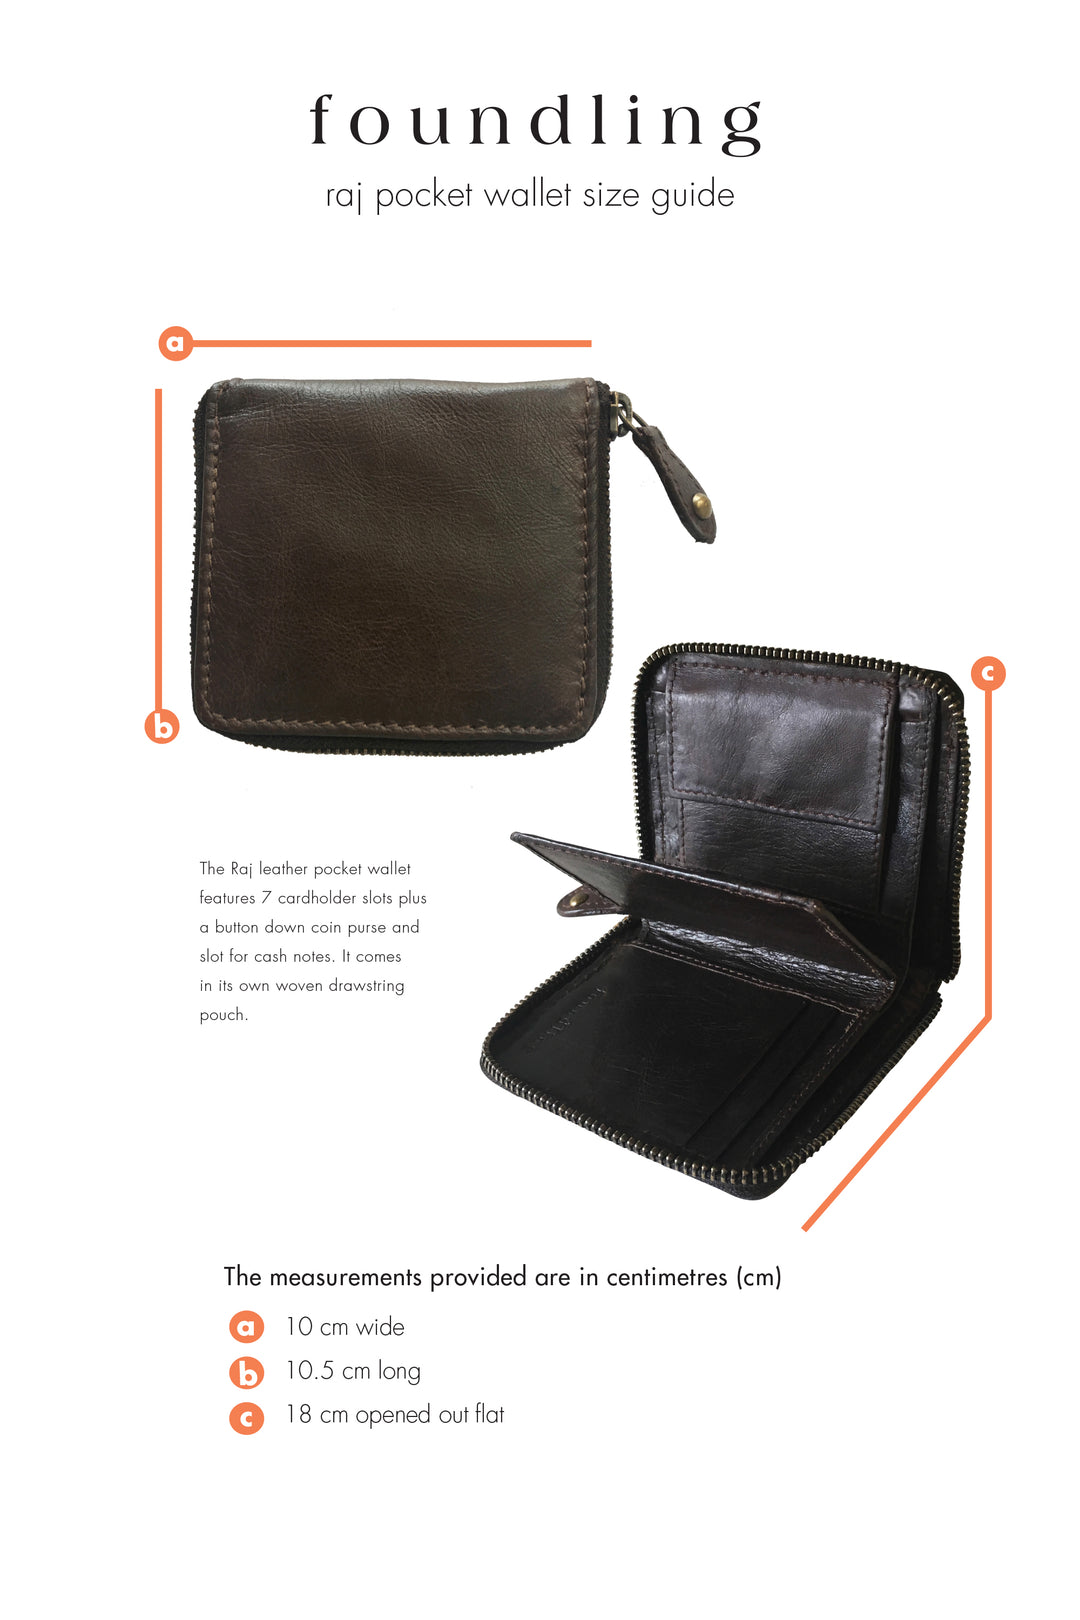 The raj zip wallet